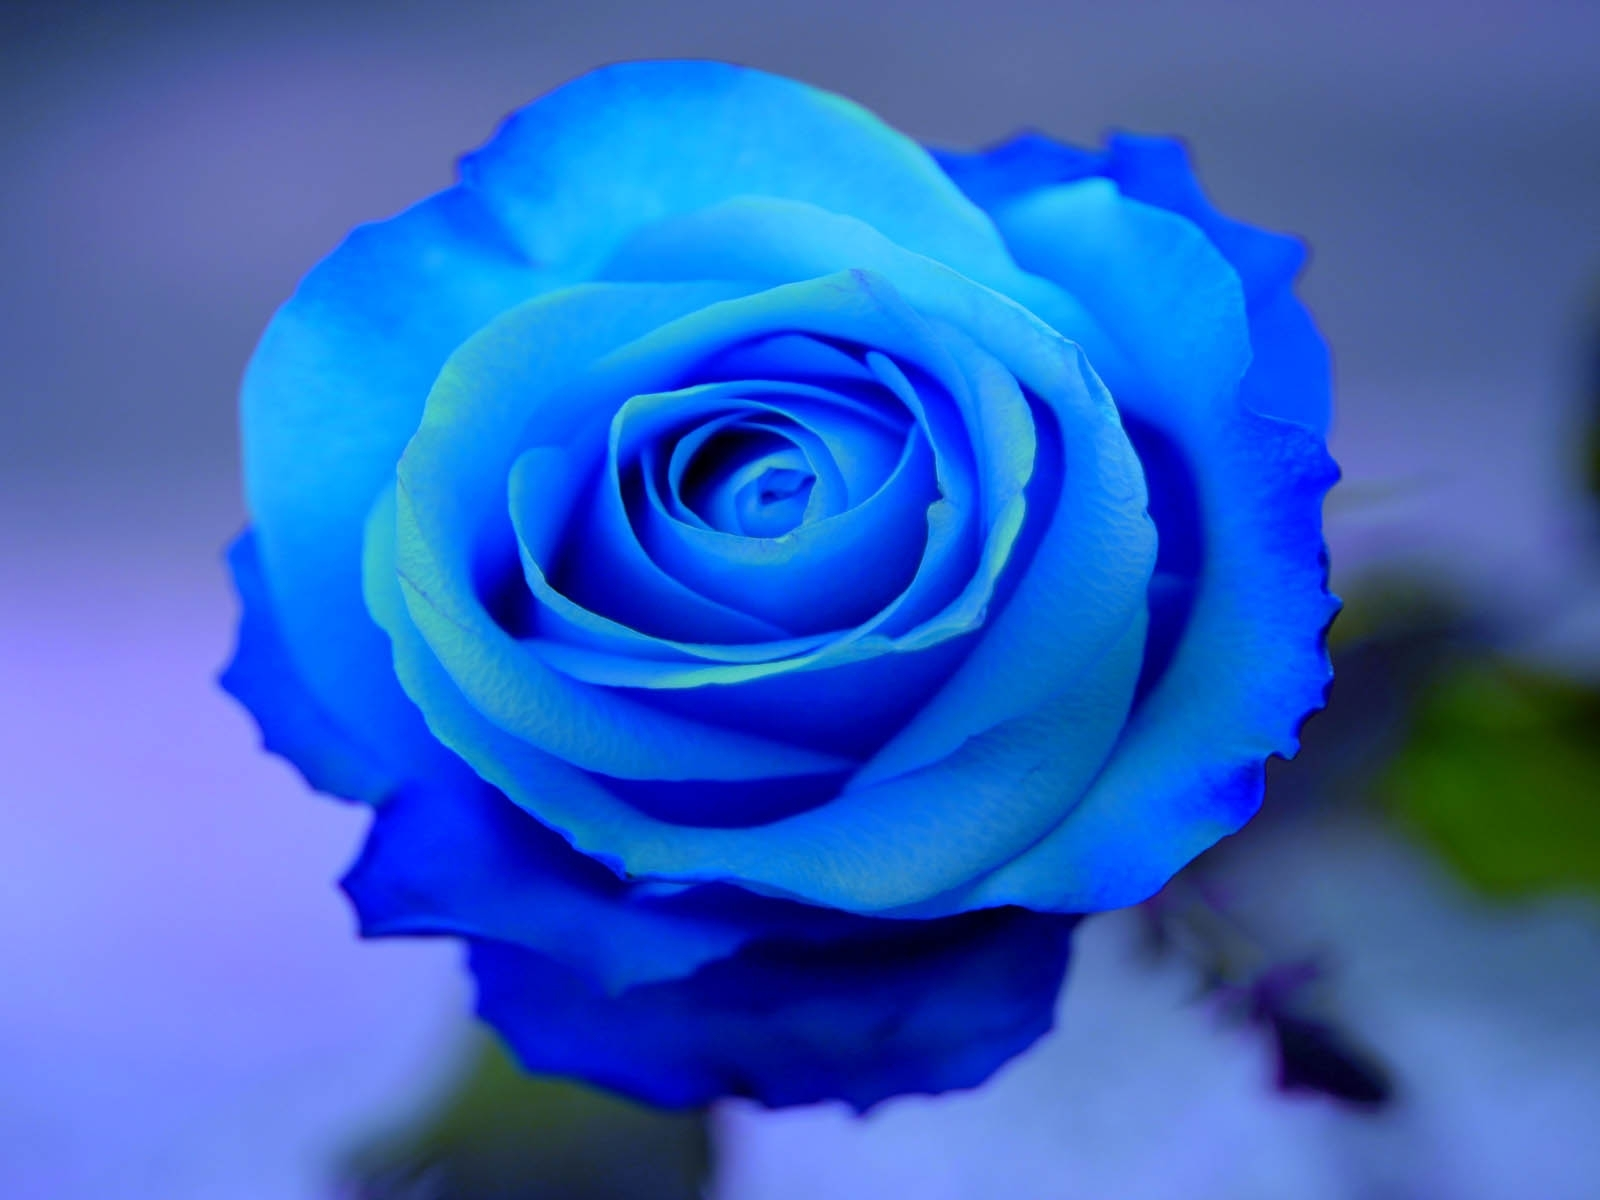 blue roses hd 29657 1600x1200 px ~ hdwallsource